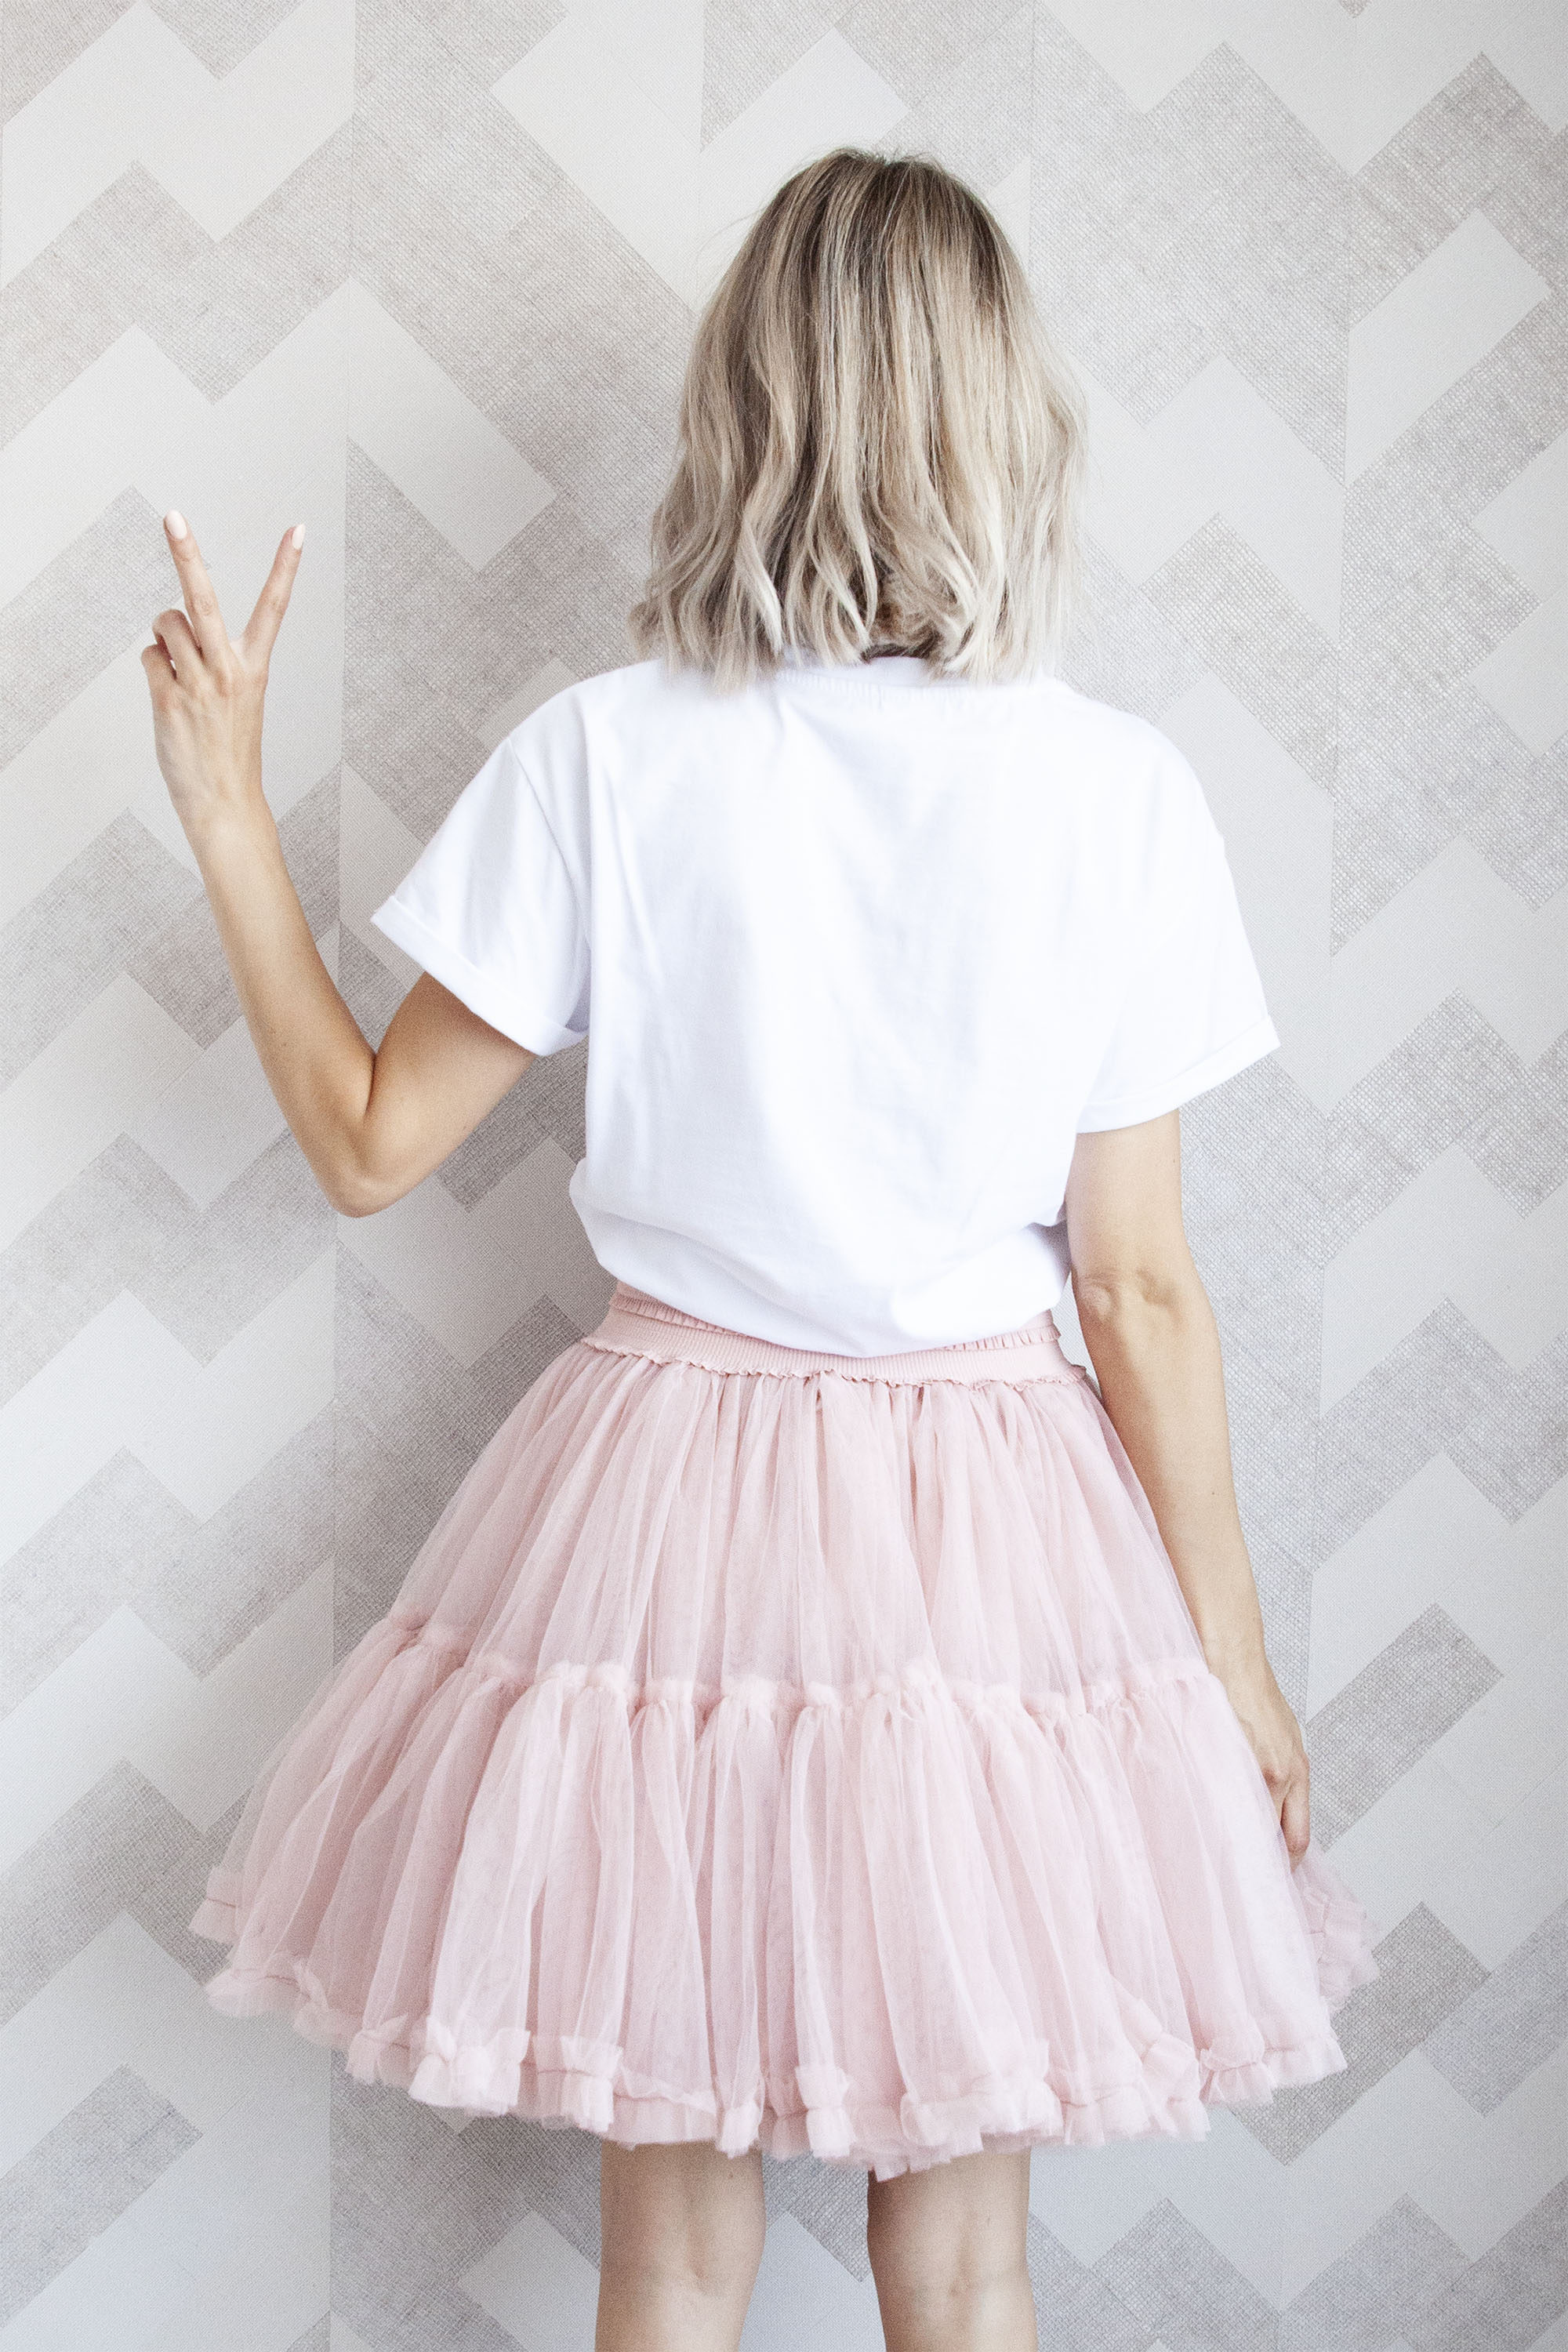 Follow Your Dreams Powder Pink - Mini Rok